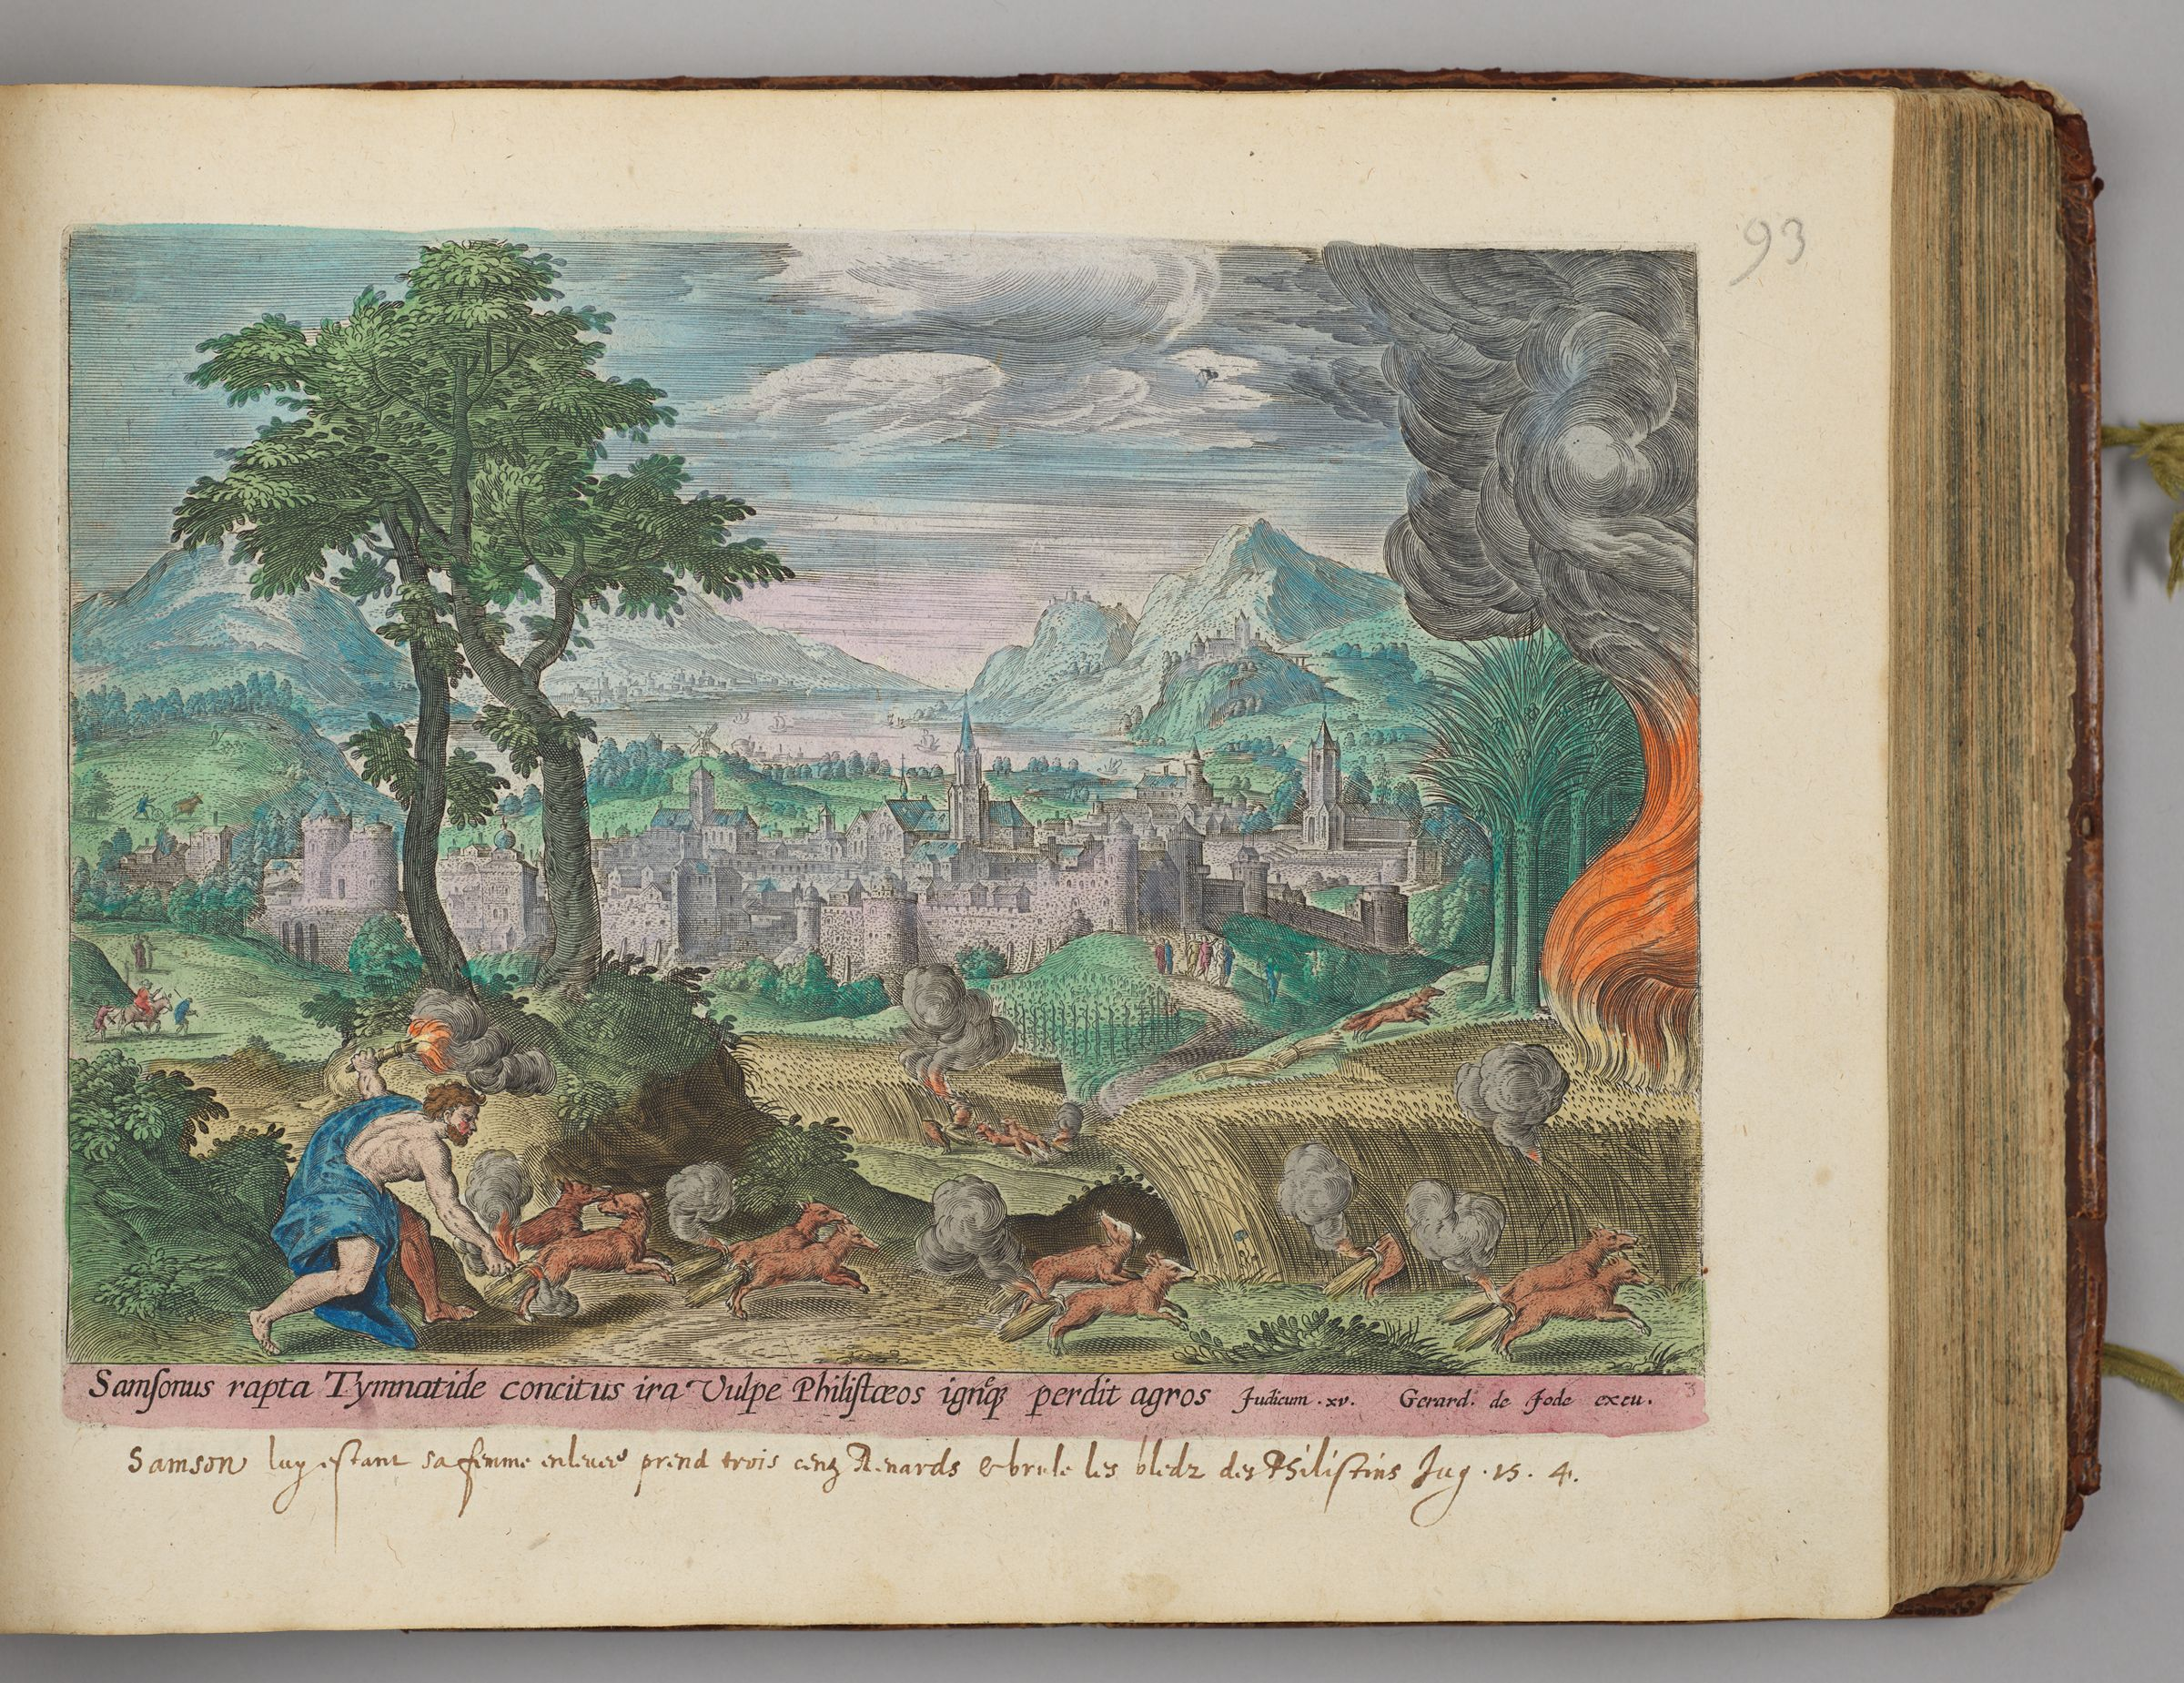 Samson Setting Fire To The Cornfields Of The Philistines